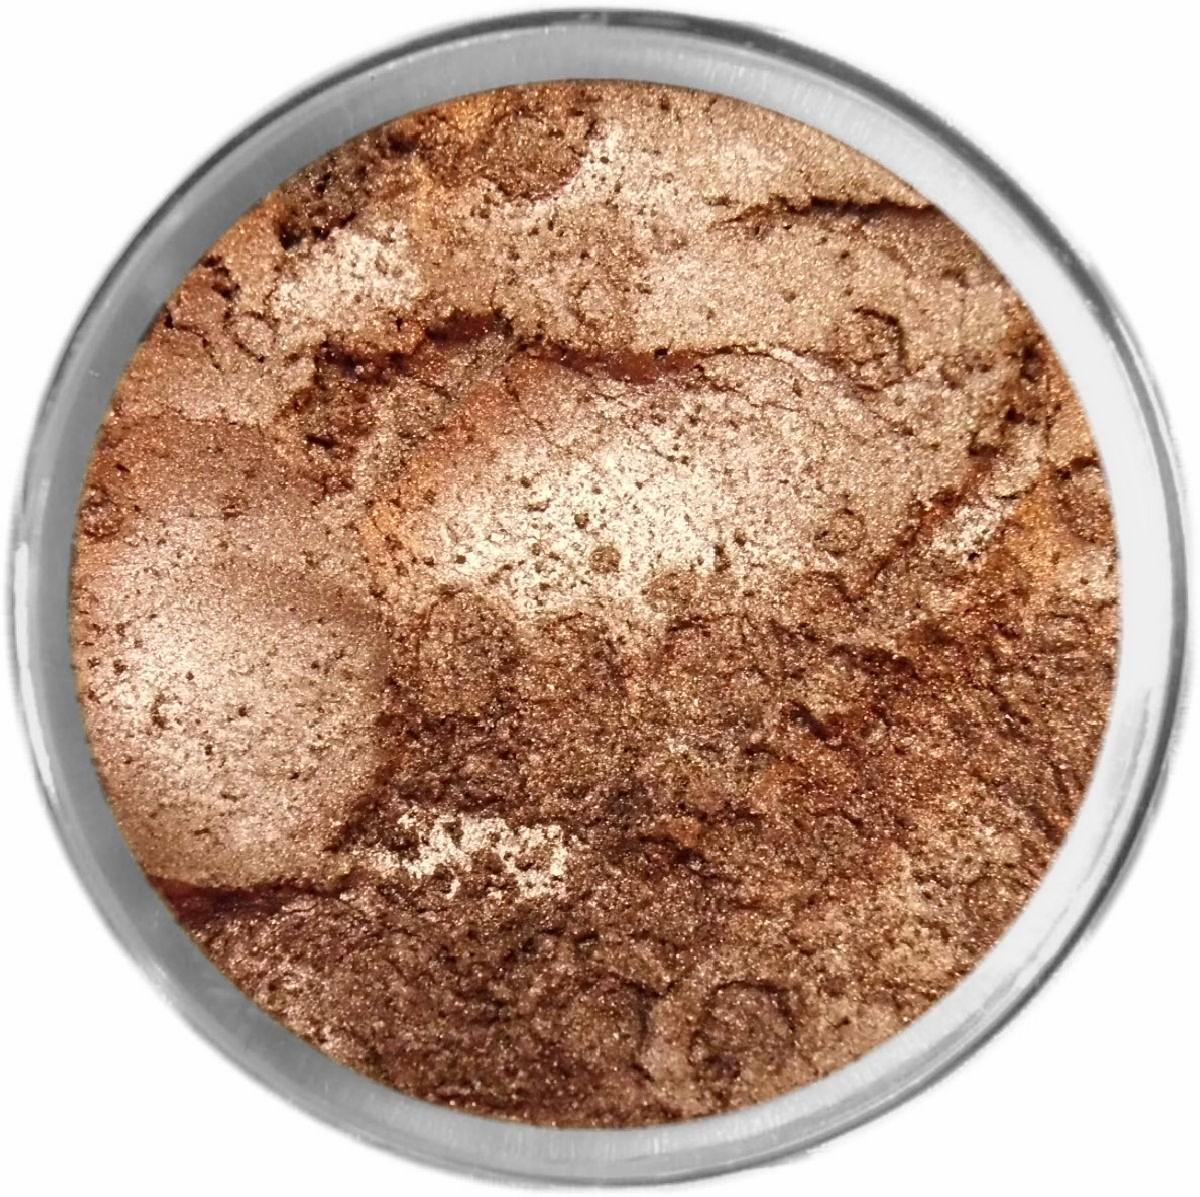 ANDULUCITE loose powder mineral multi-use color makeup bare earth pigment minerals